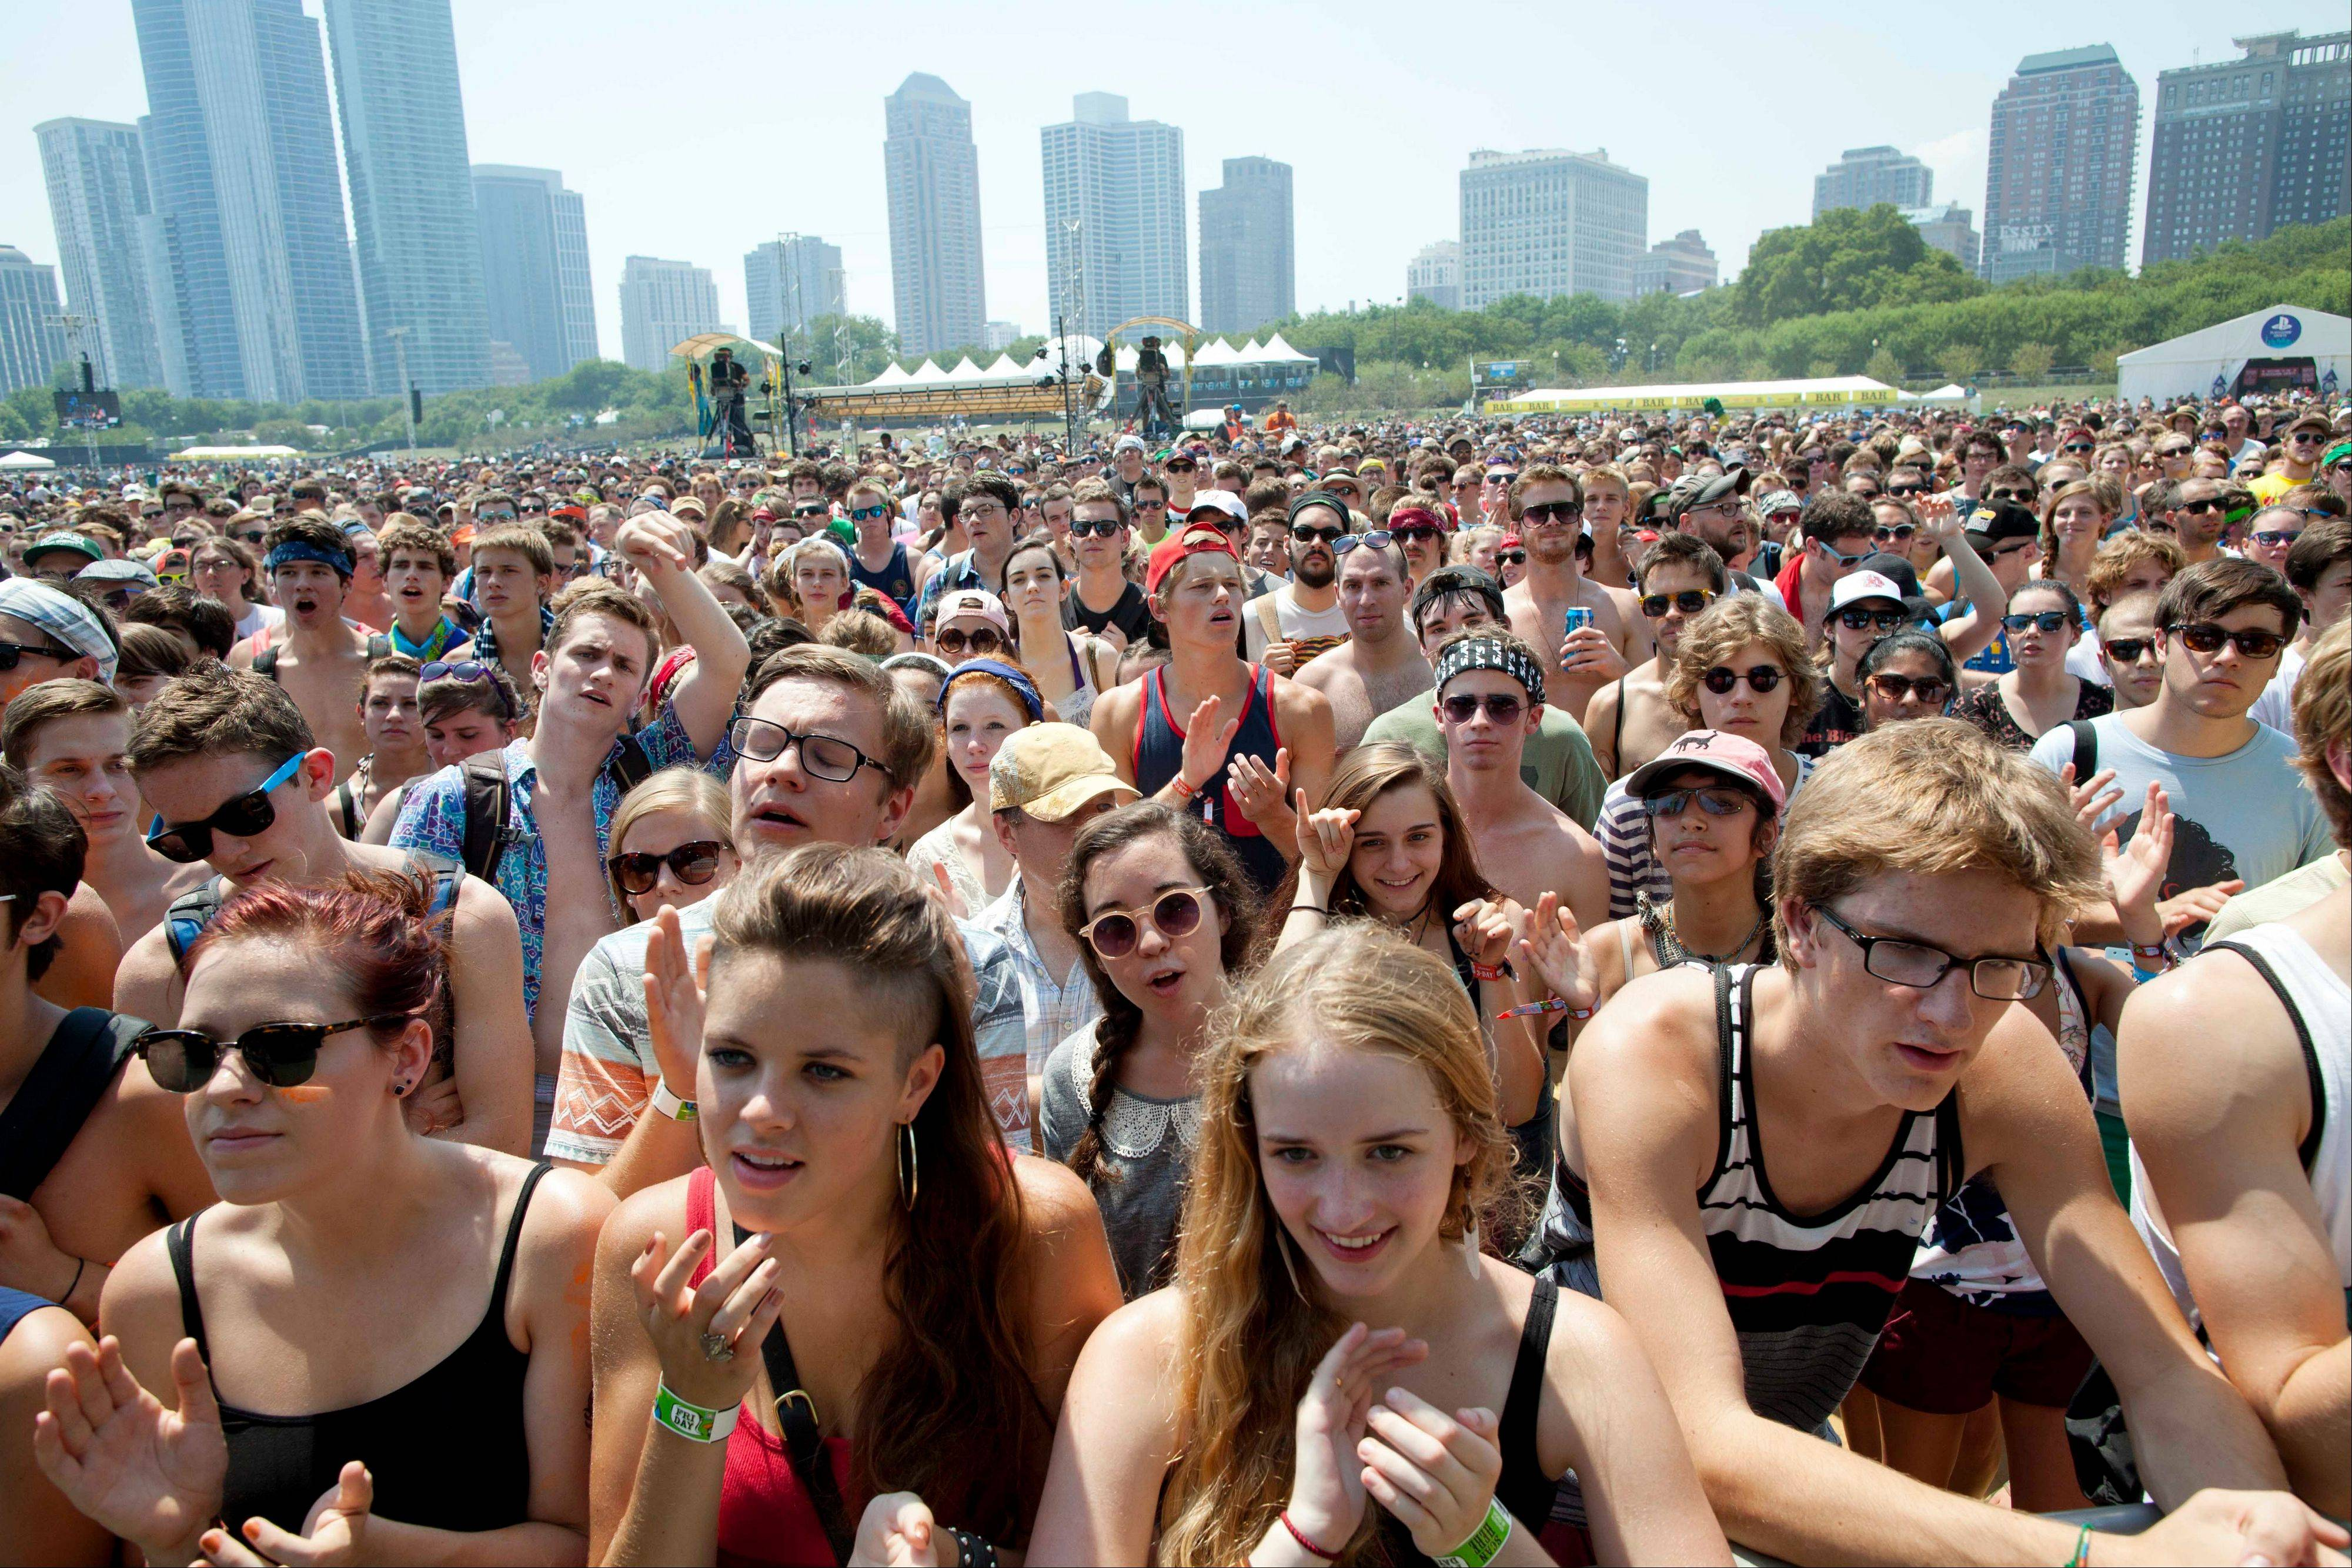 Fans gather for a performance by Yellow Ostrich XX on Aug. 3 at Lollapalooza in Chicago�s Grant Park.